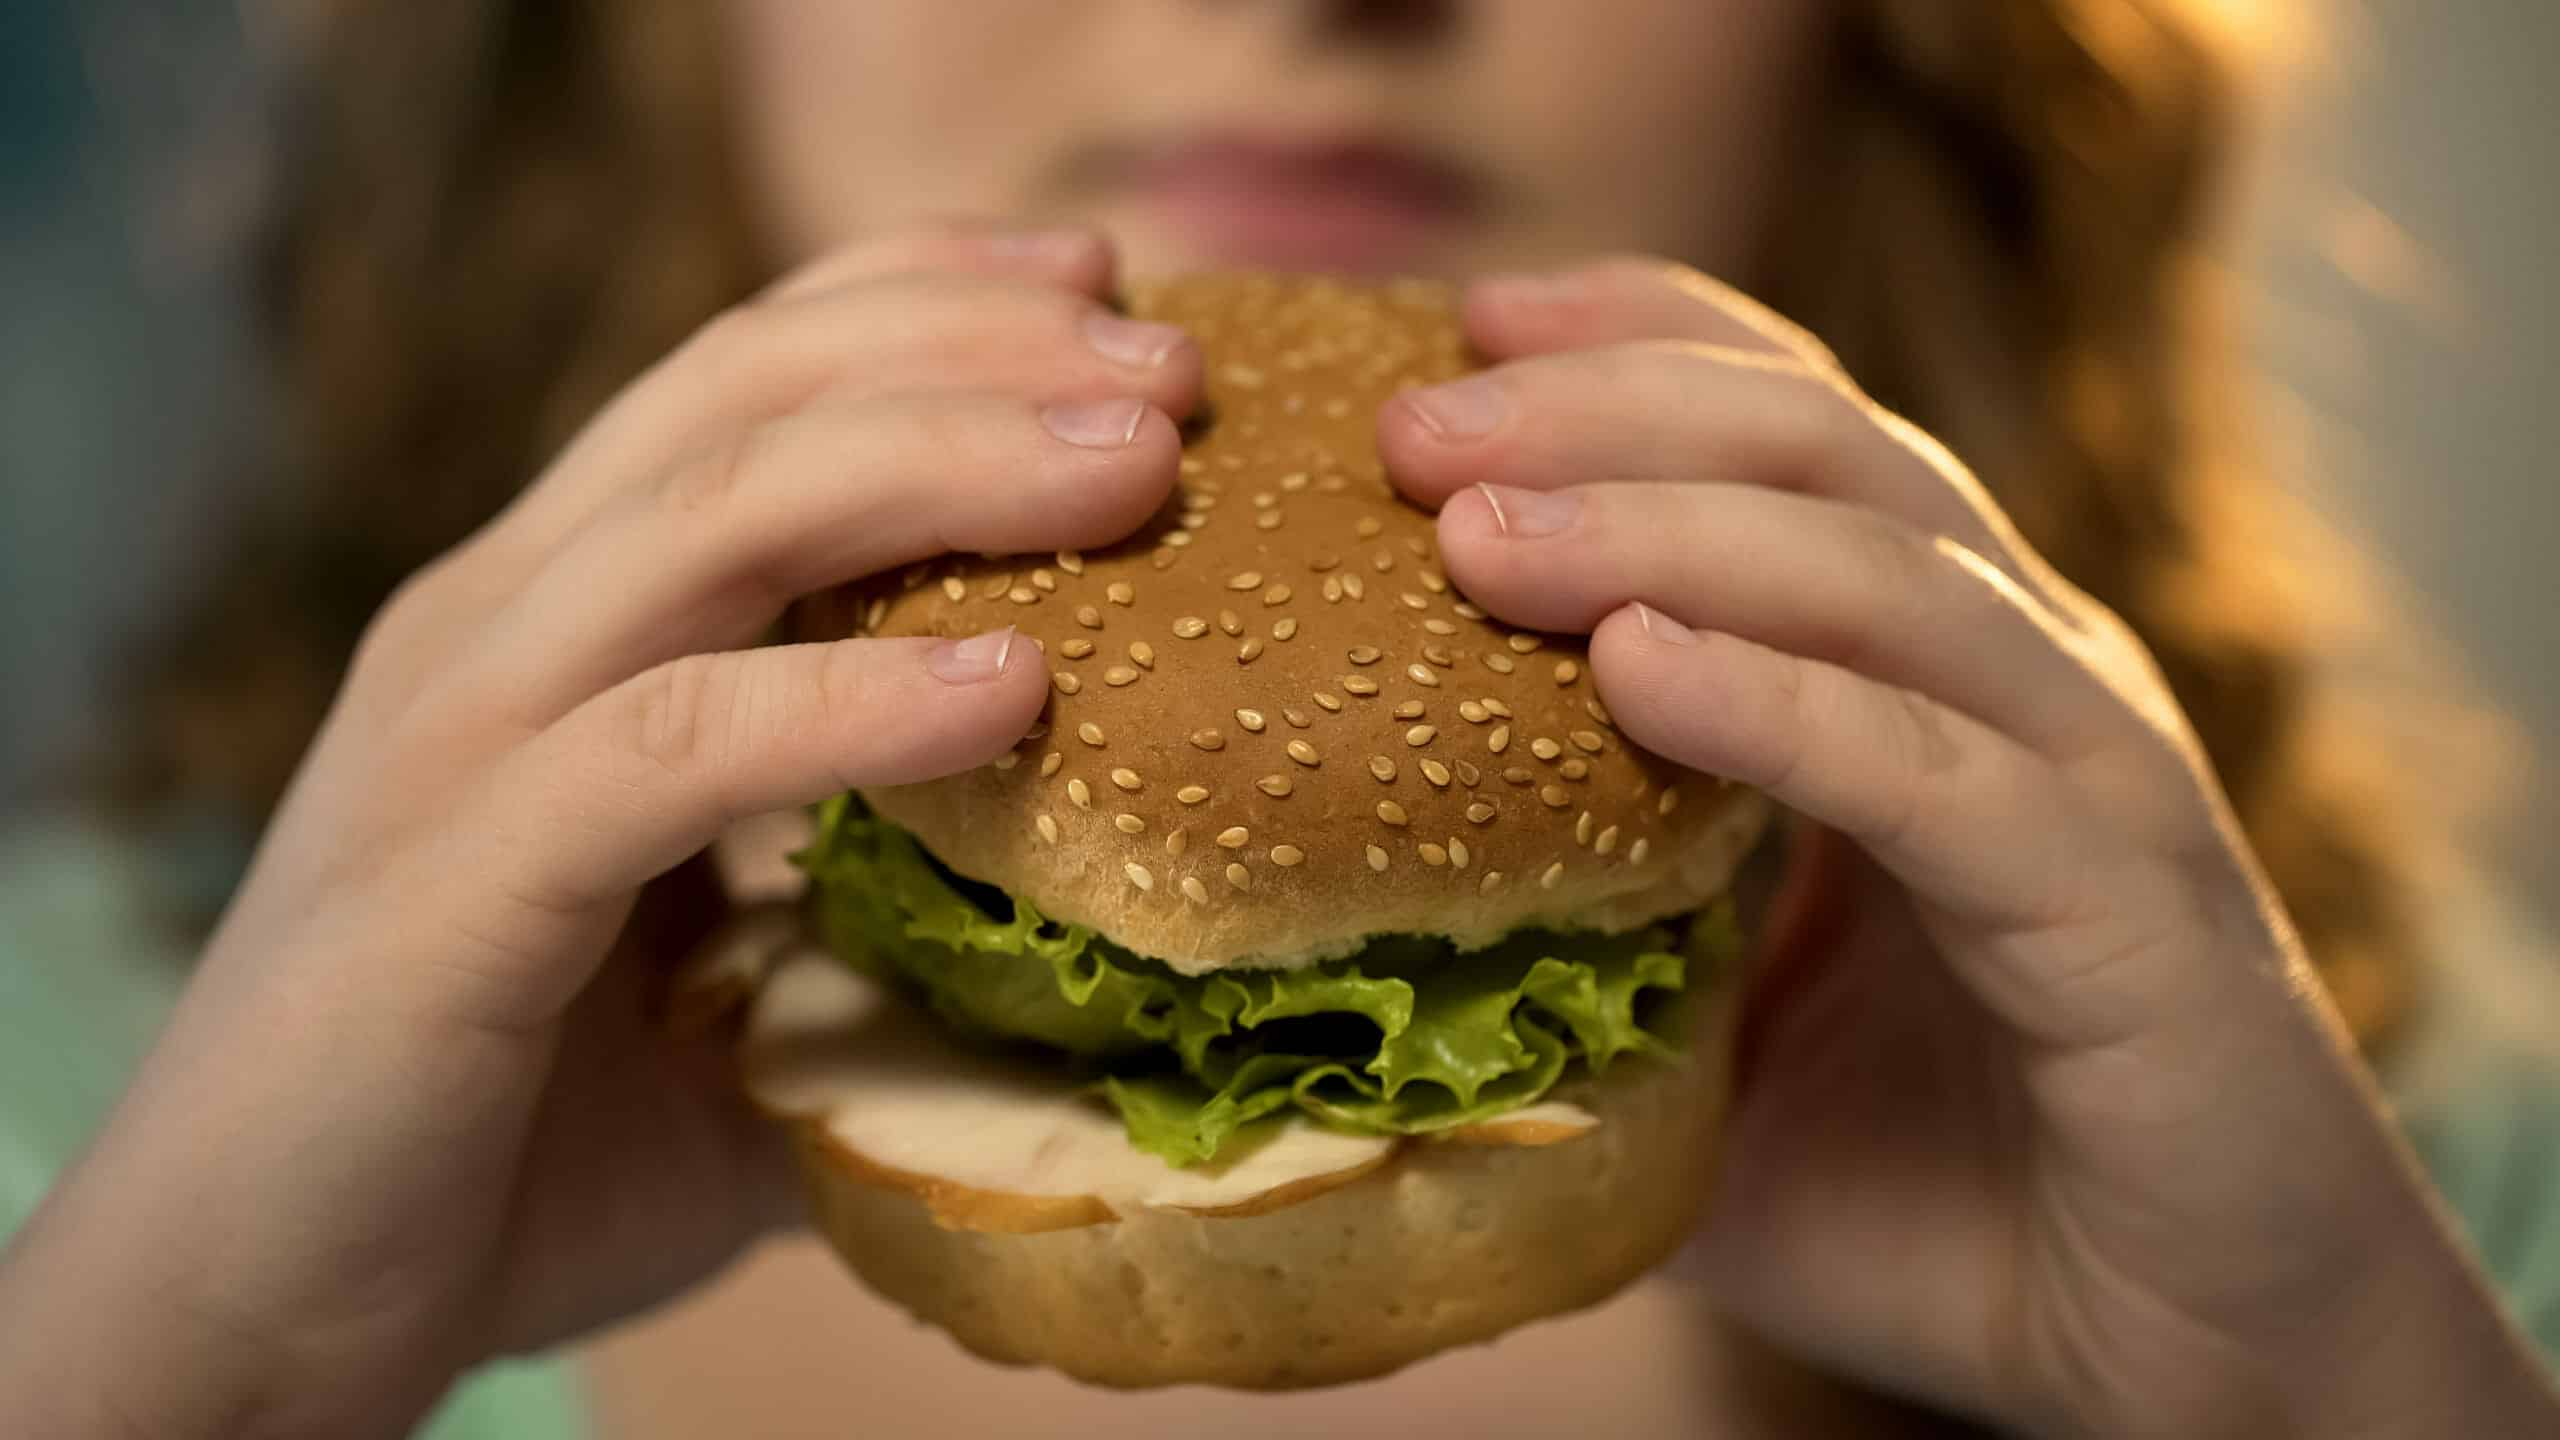 Female biting fast food burger closeup, unhealthy nutrition and overeating